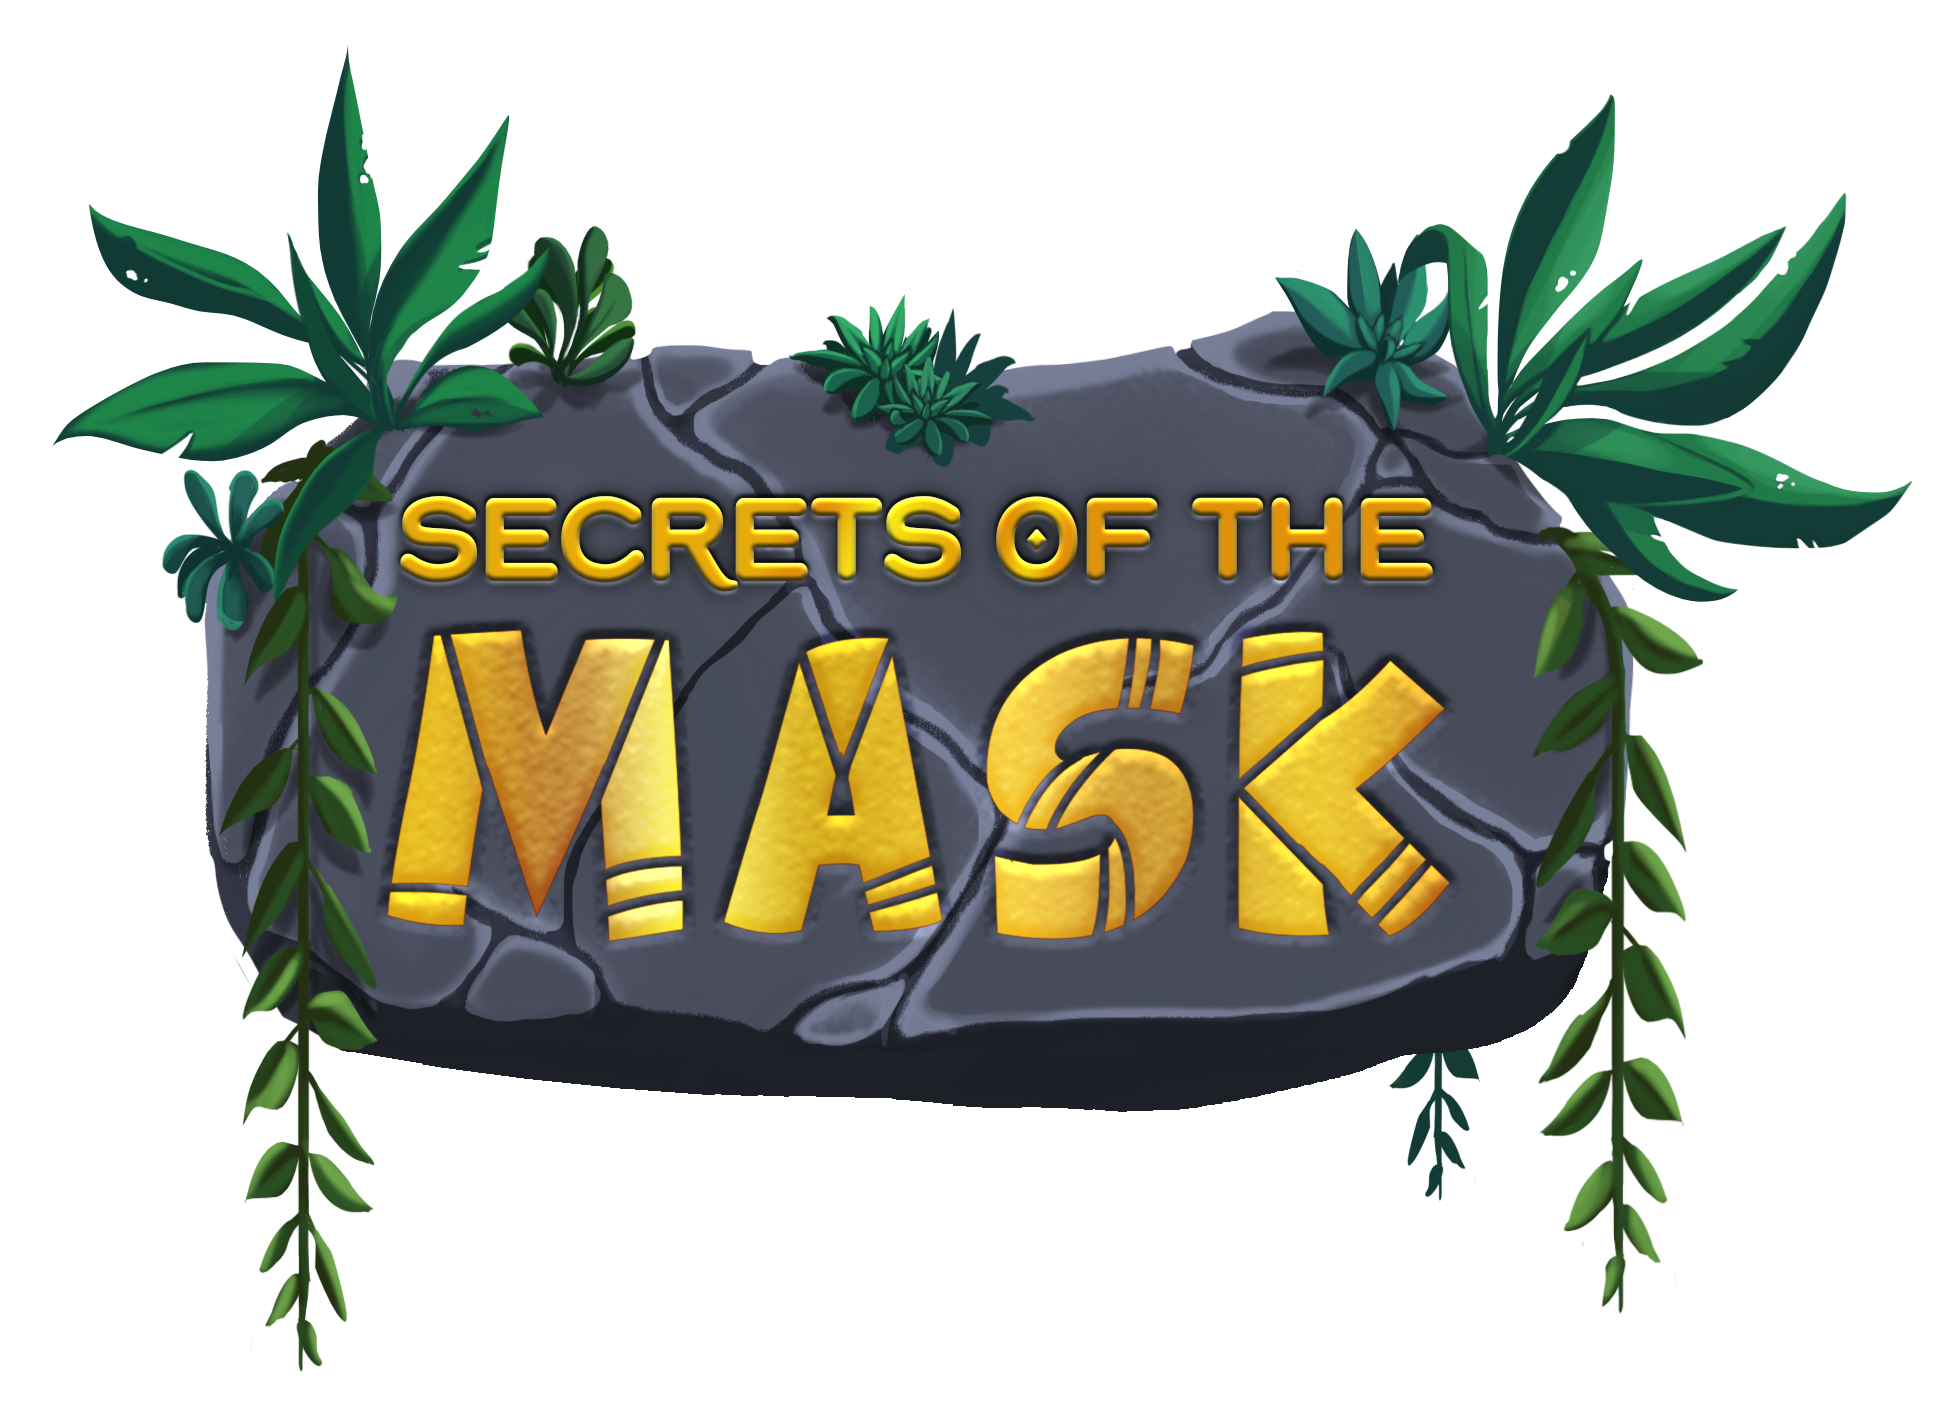 Secrets of the Mask